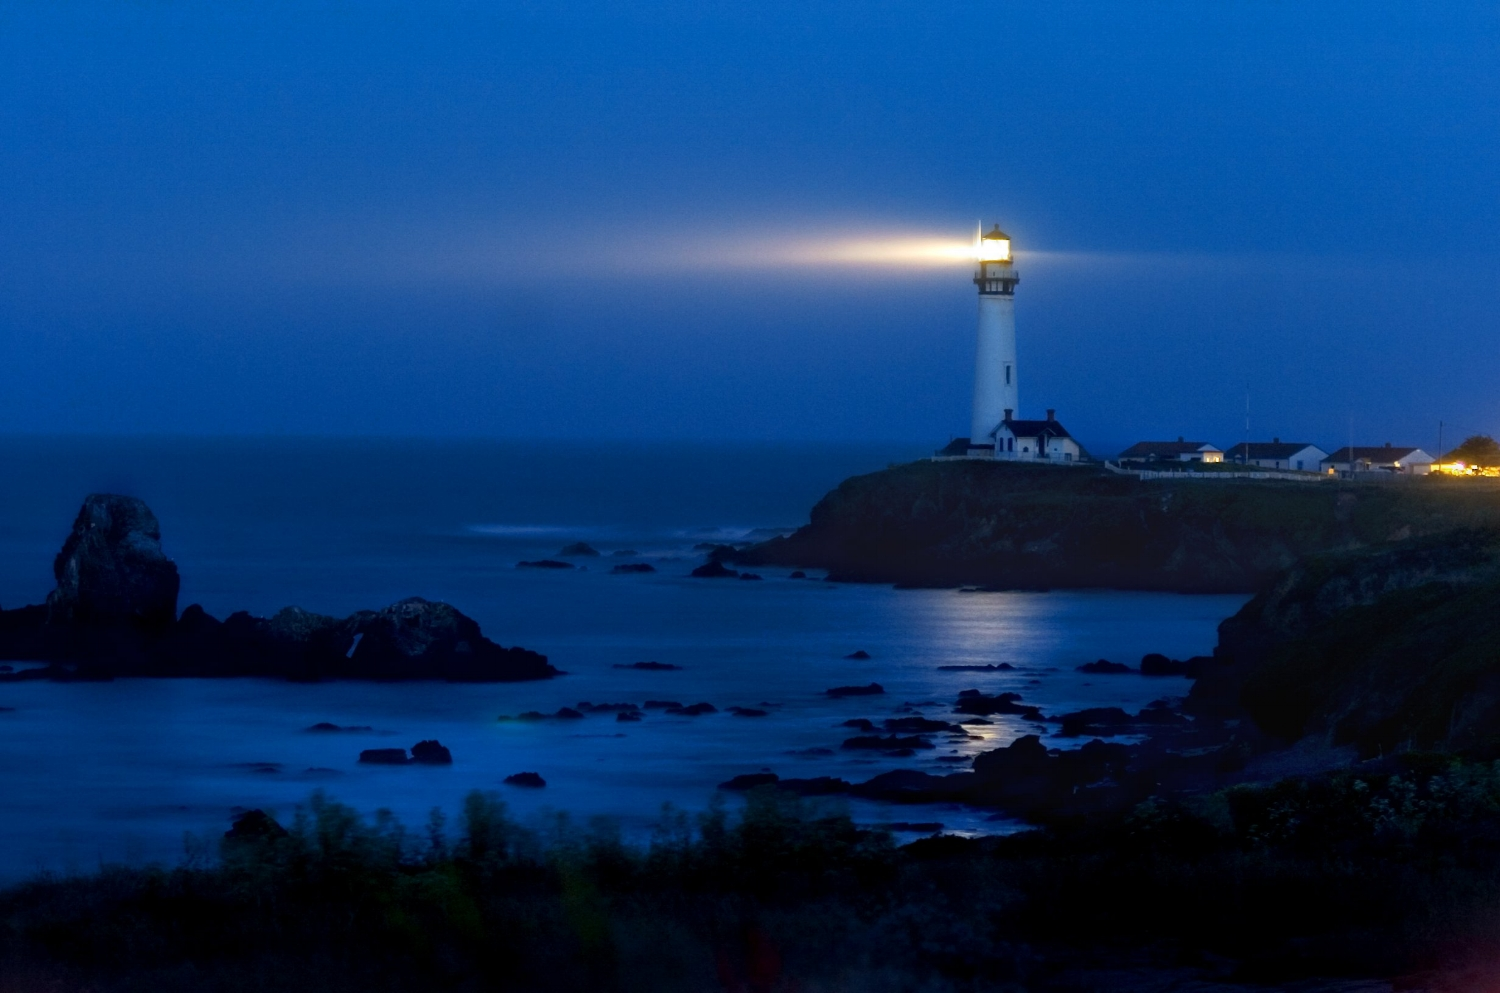 The Pigeon Point Lighthouse in Pescadero on Wednesday June 1, 2005.